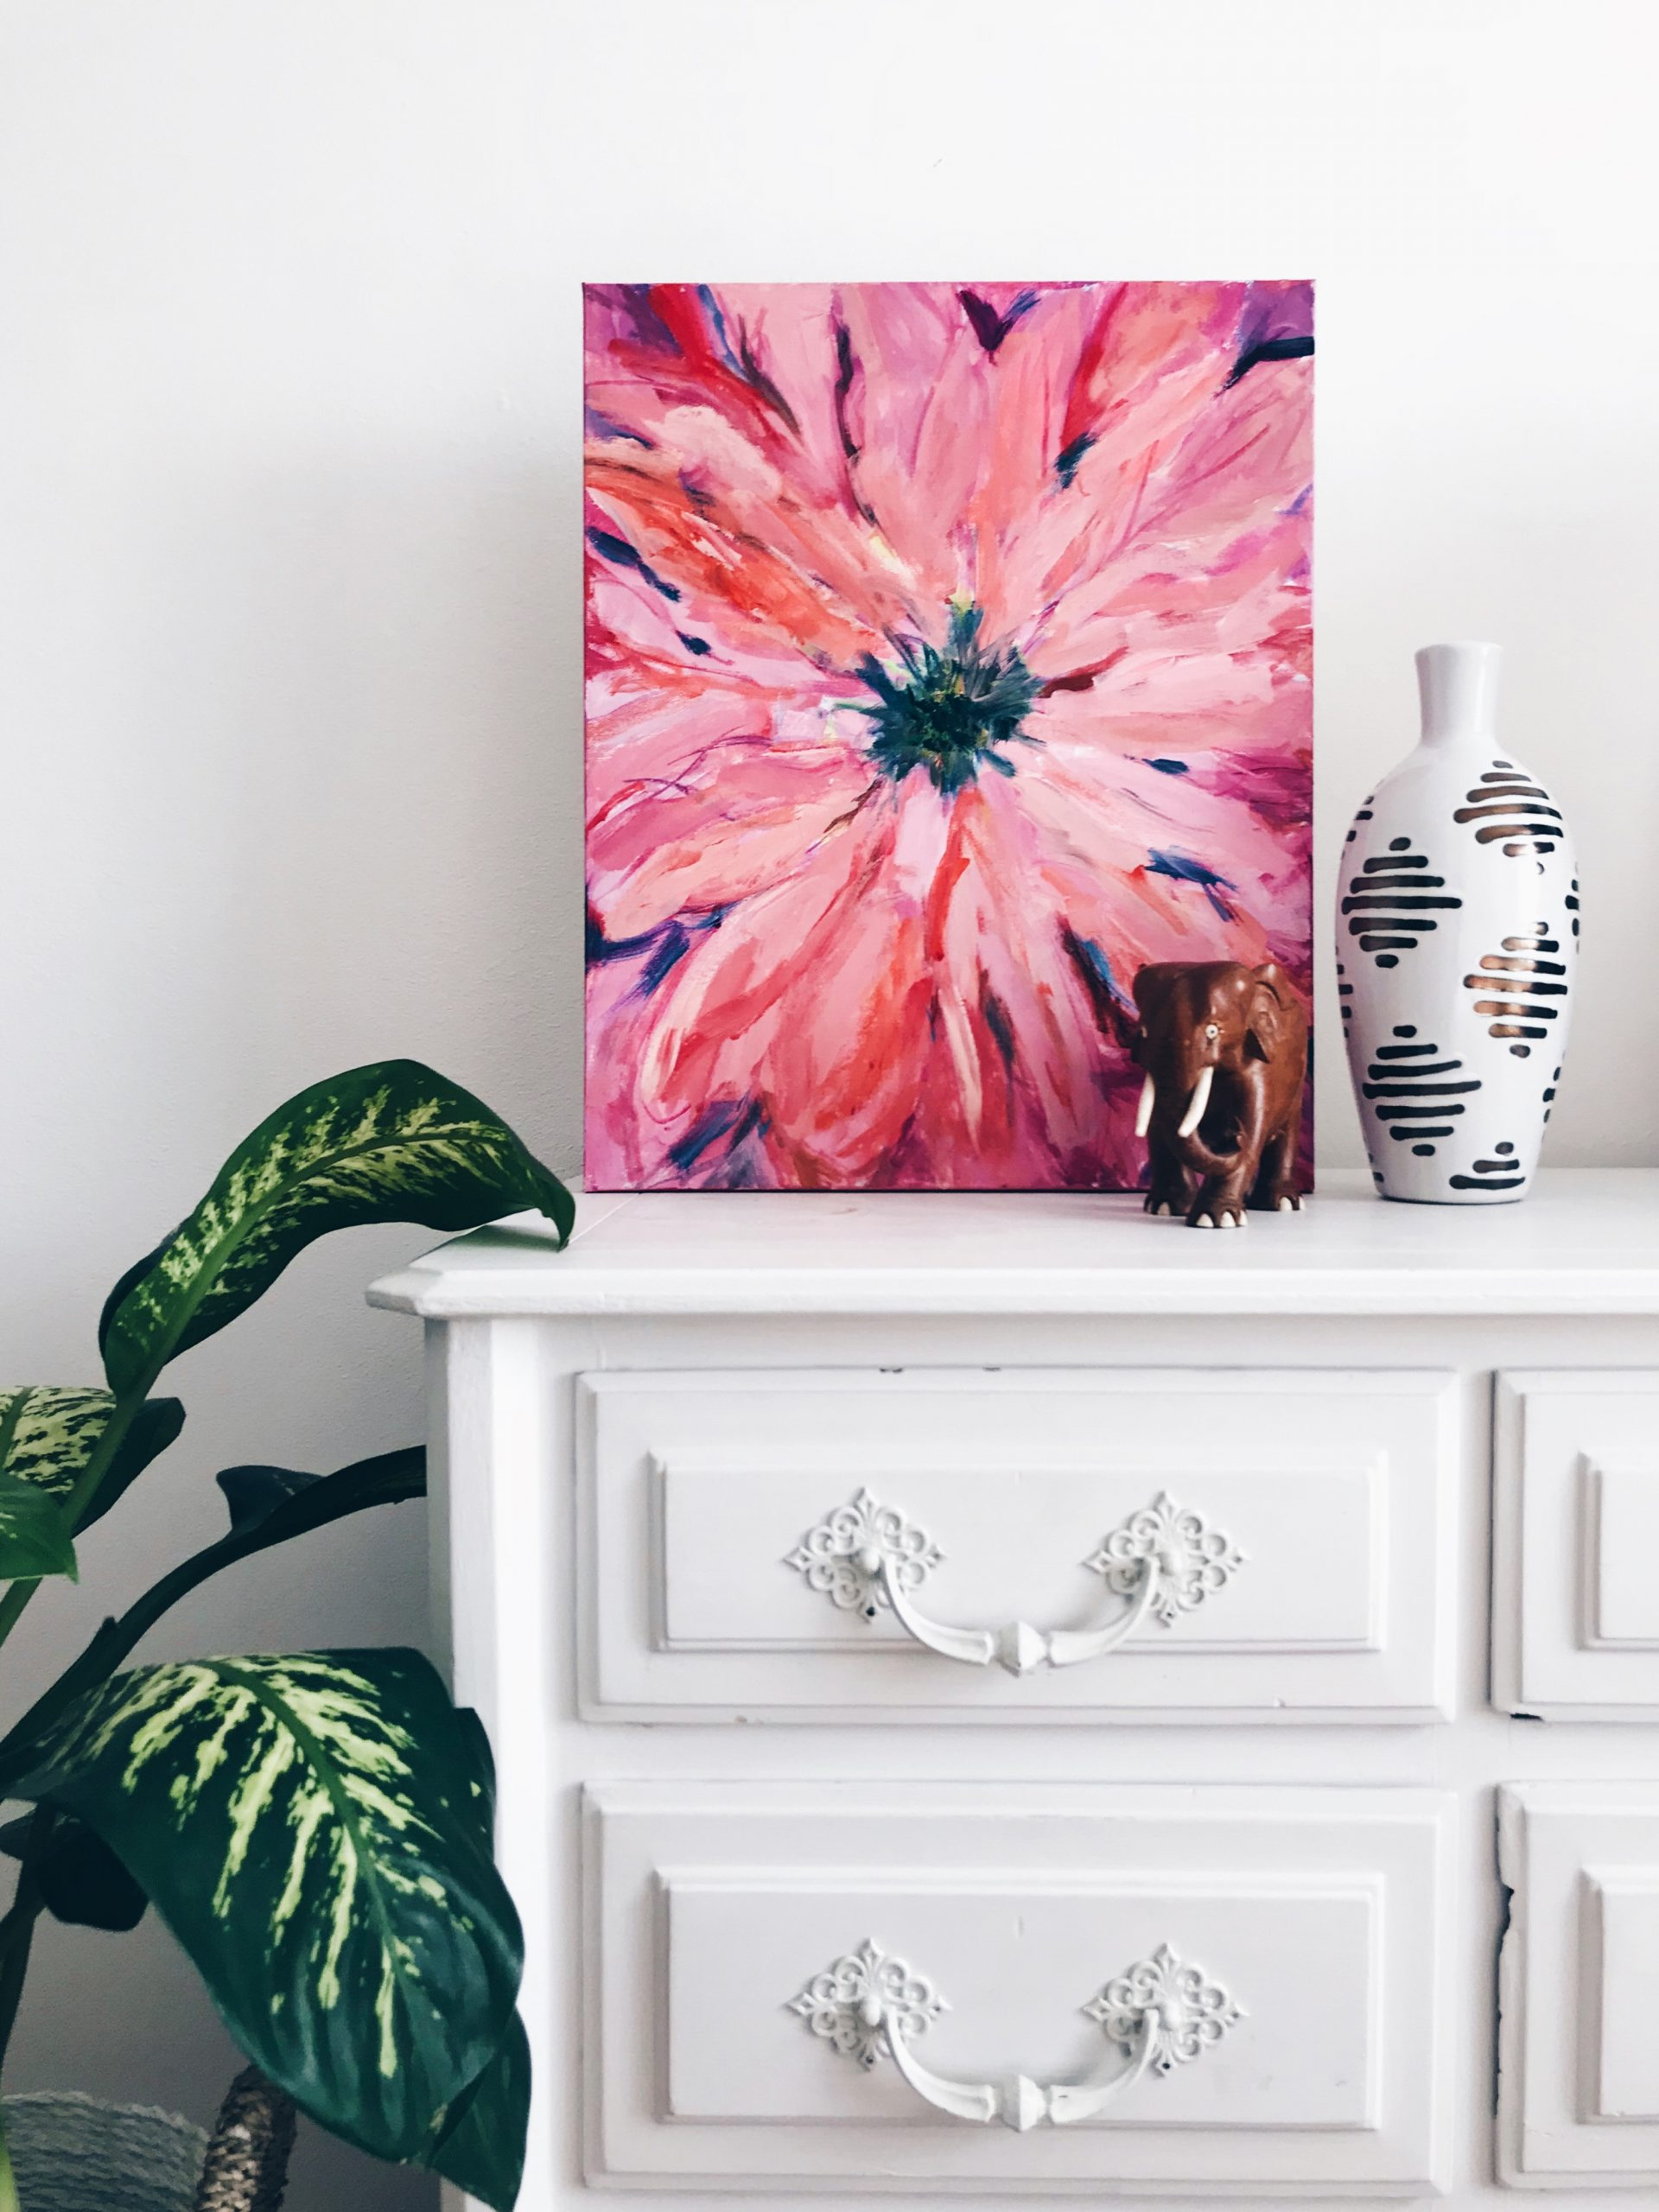 9+ Budget Friendly Home Decor Hacks To Make Your Home Look Modern